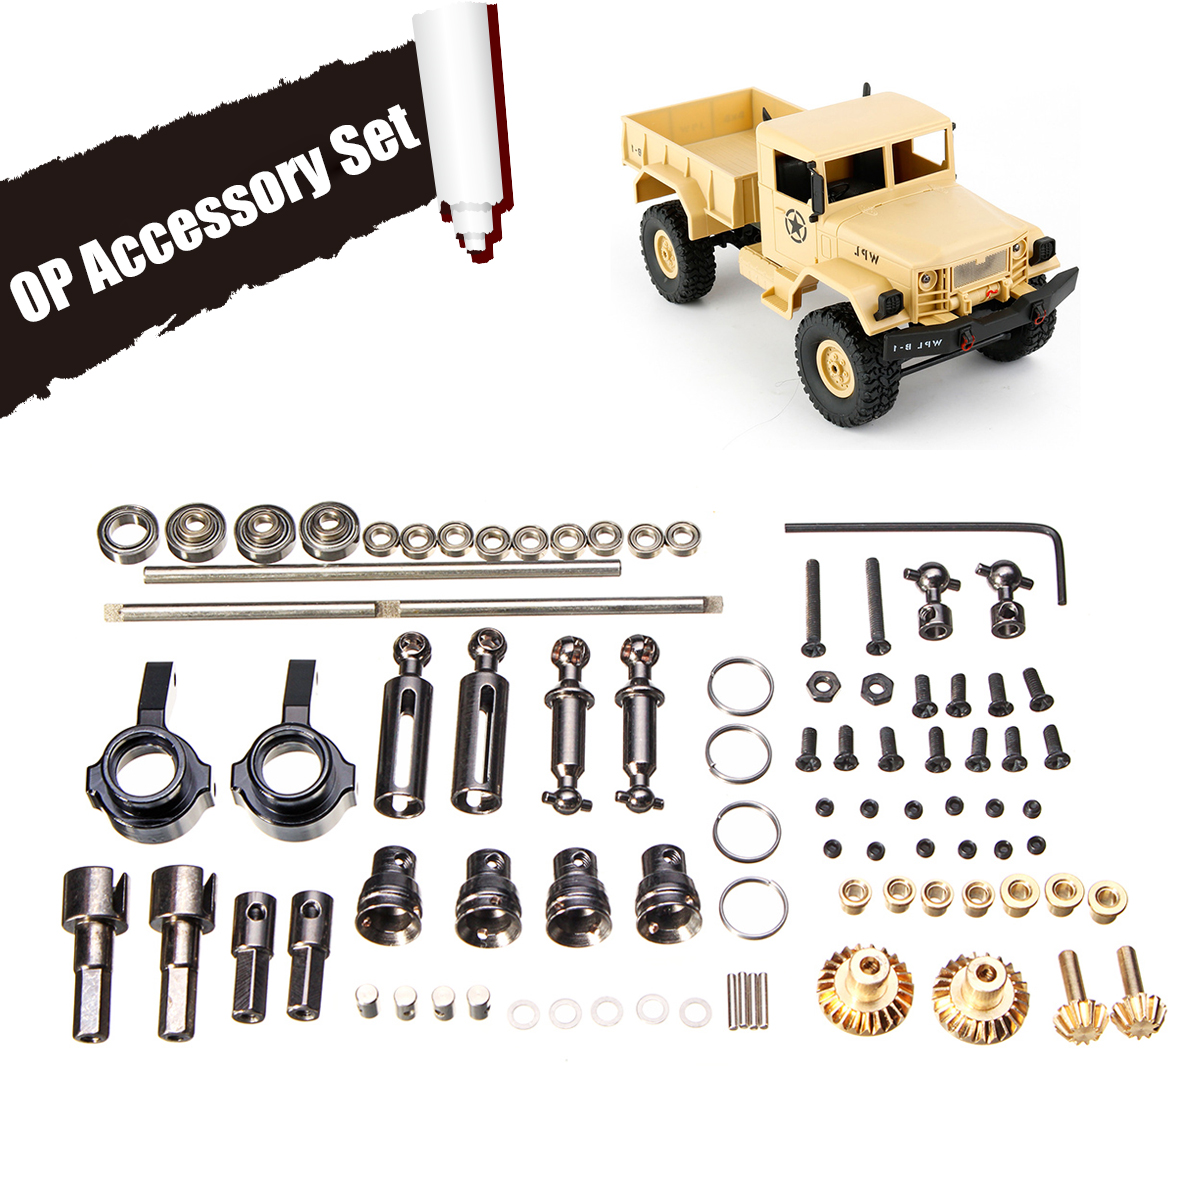 Upgrade Metal OP Accessory Set For WPL RC Car B1 B14 B24 C14 C24 1/16 4WD Military Truck RC Cars Spare Part Set Perfect-FitUpgrade Metal OP Accessory Set For WPL RC Car B1 B14 B24 C14 C24 1/16 4WD Military Truck RC Cars Spare Part Set Perfect-Fit